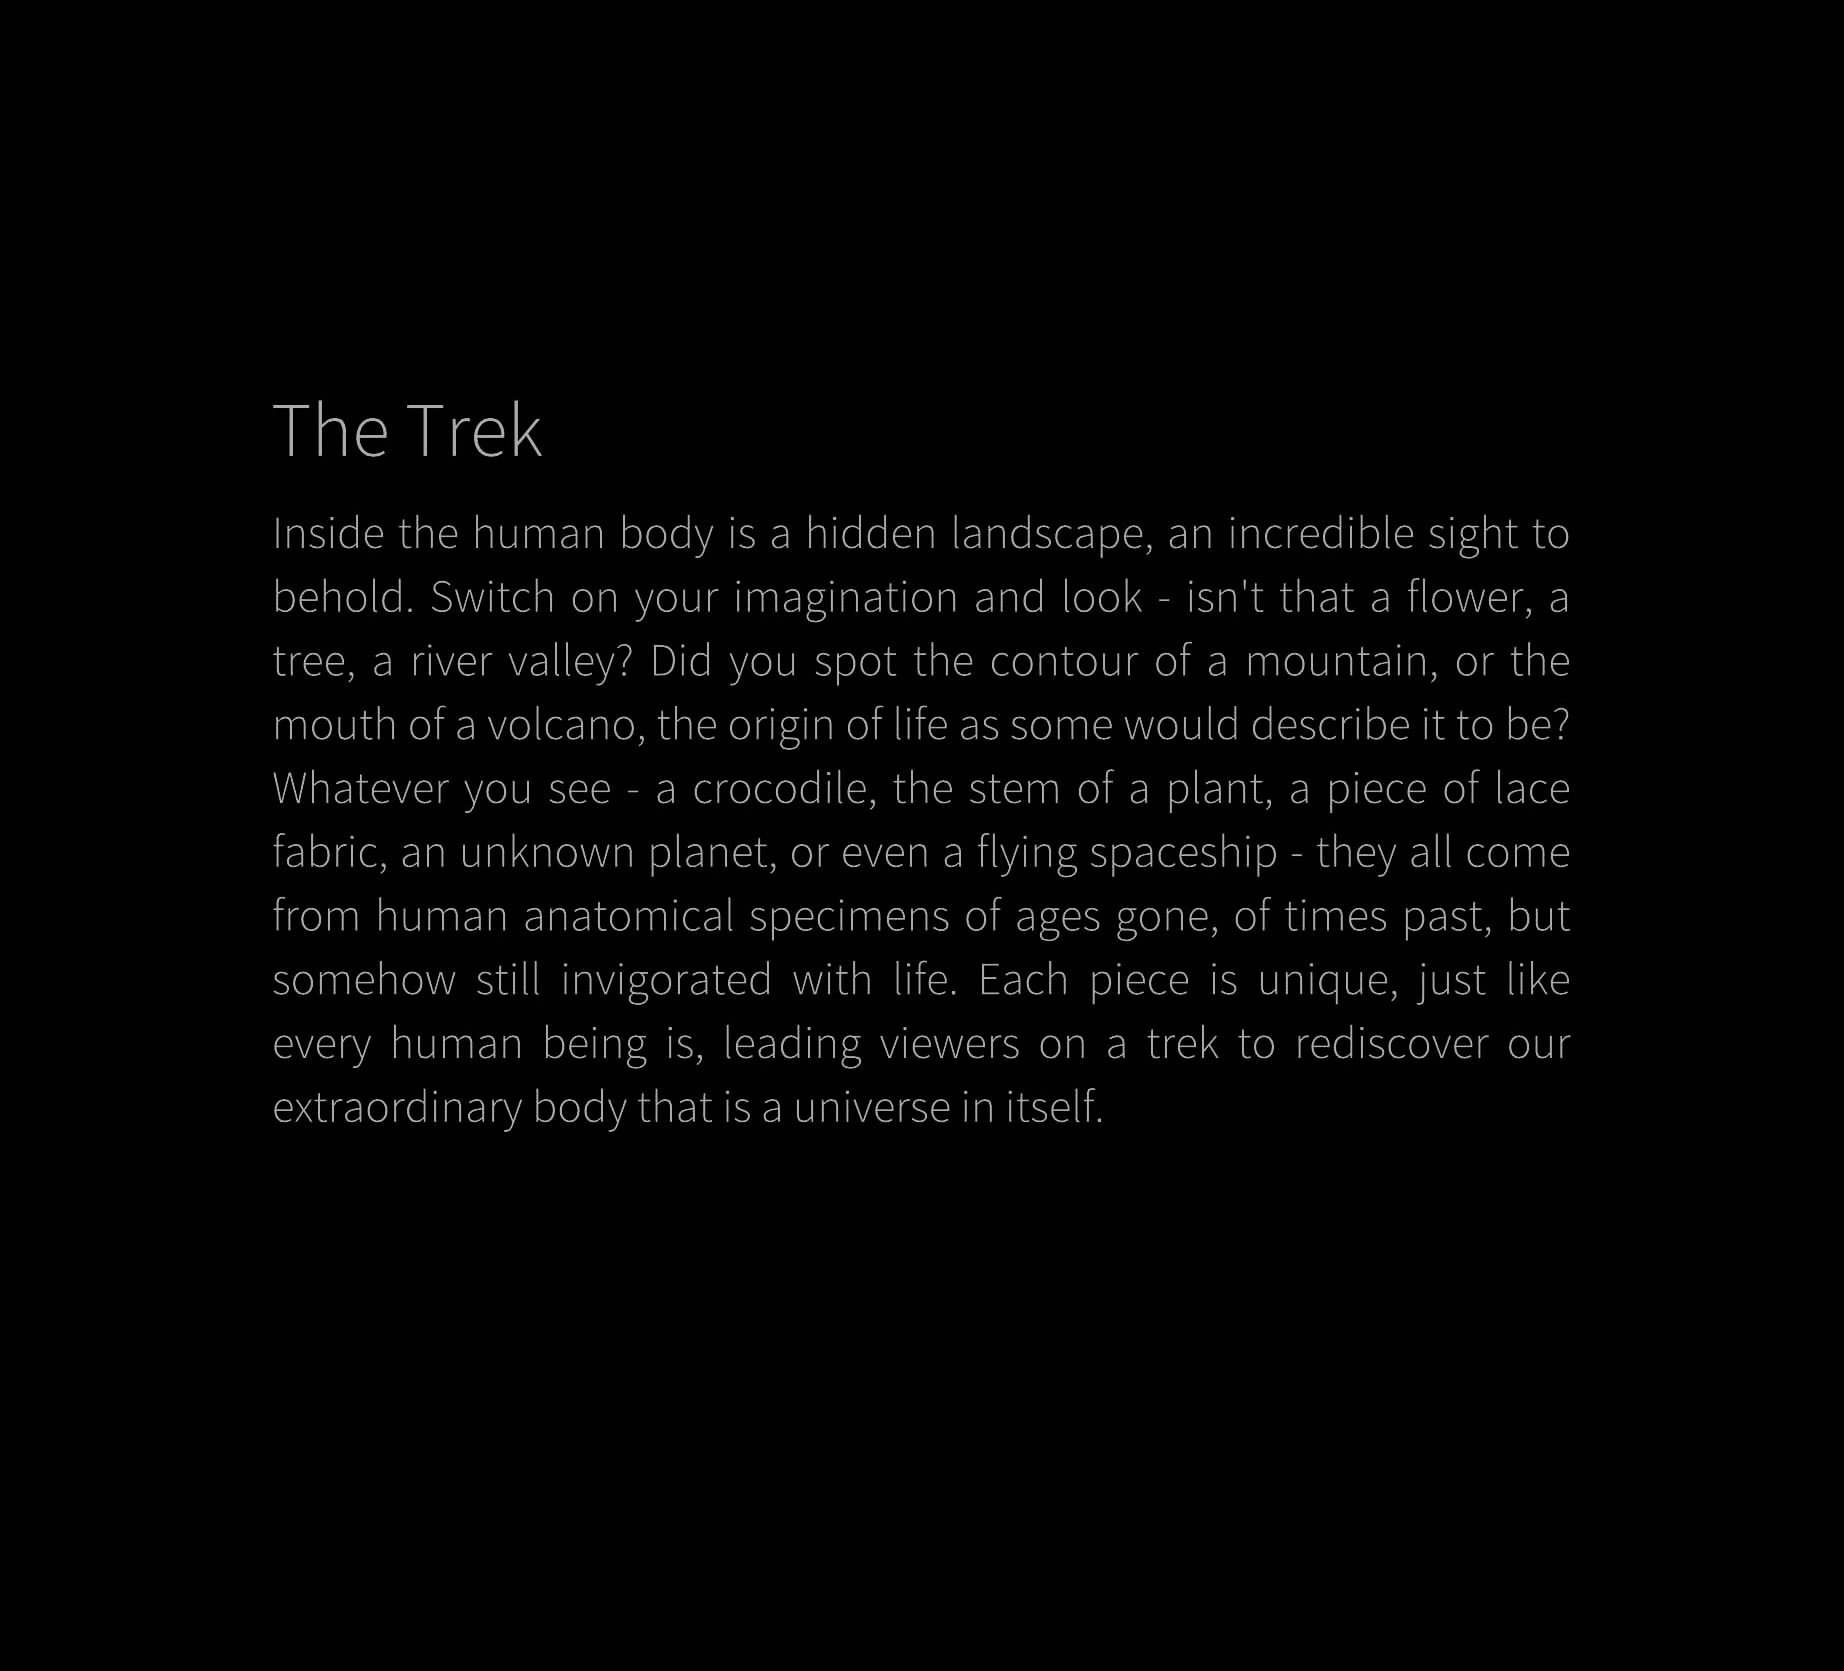 The Trek sataement_page.jpg